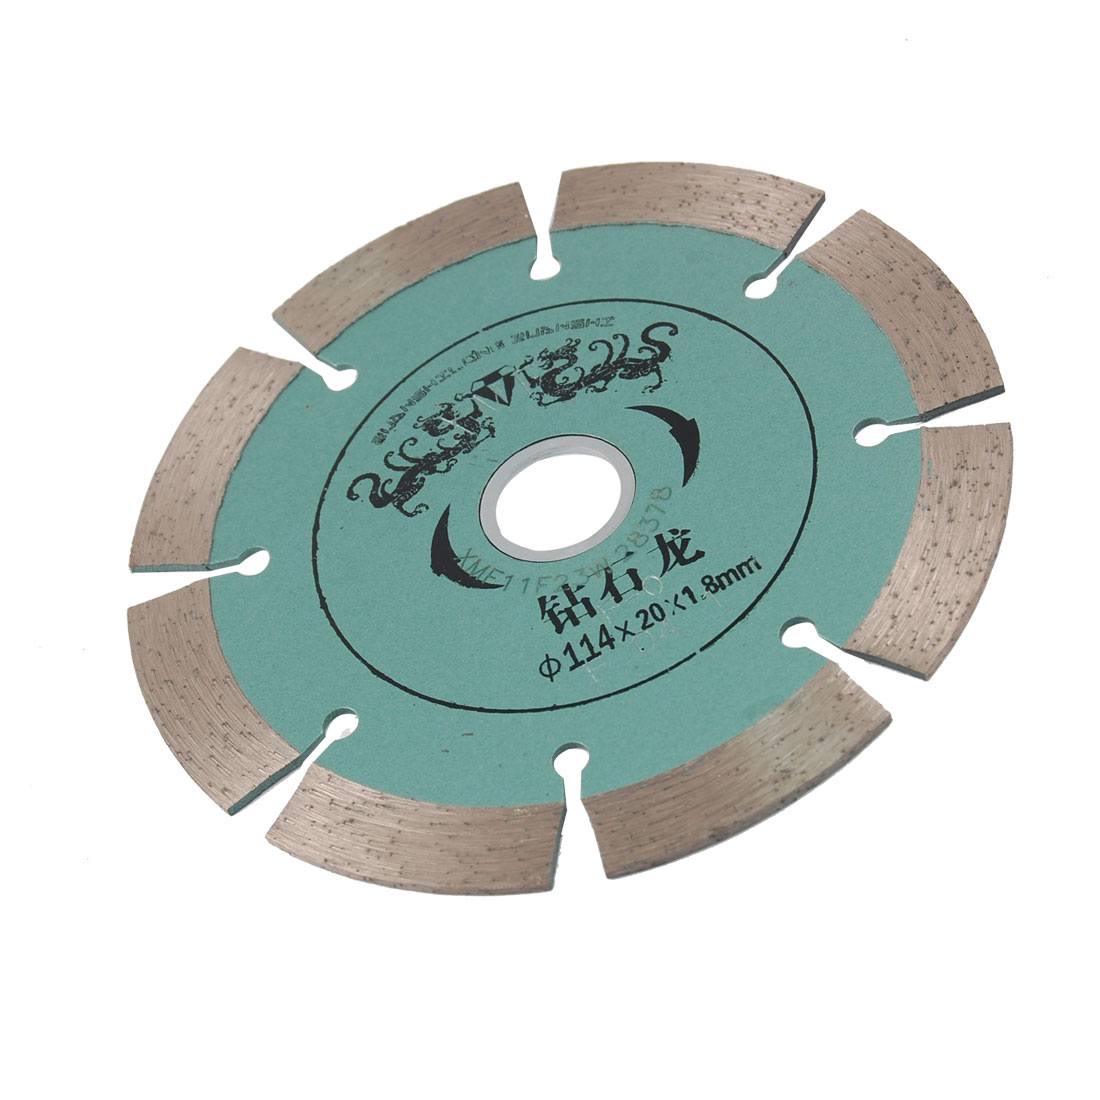 114mm x 20mm x 1.8mm Glass Marble Milling Cutter Diamond Saw Blade